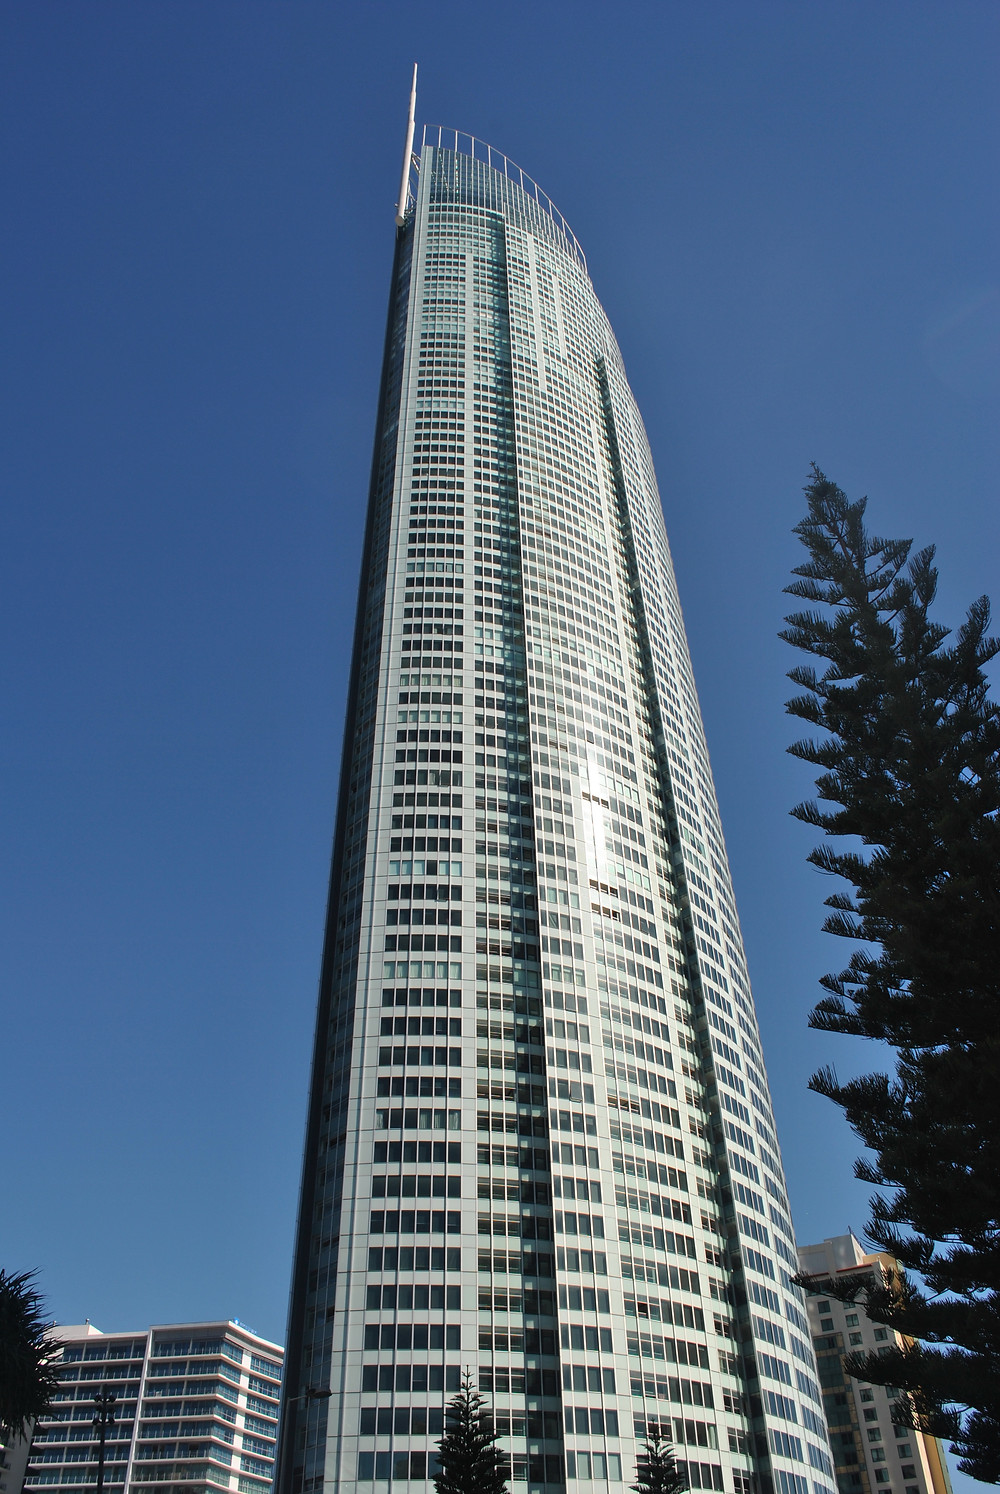 Trip to the Gold Coast. Q1 Tower